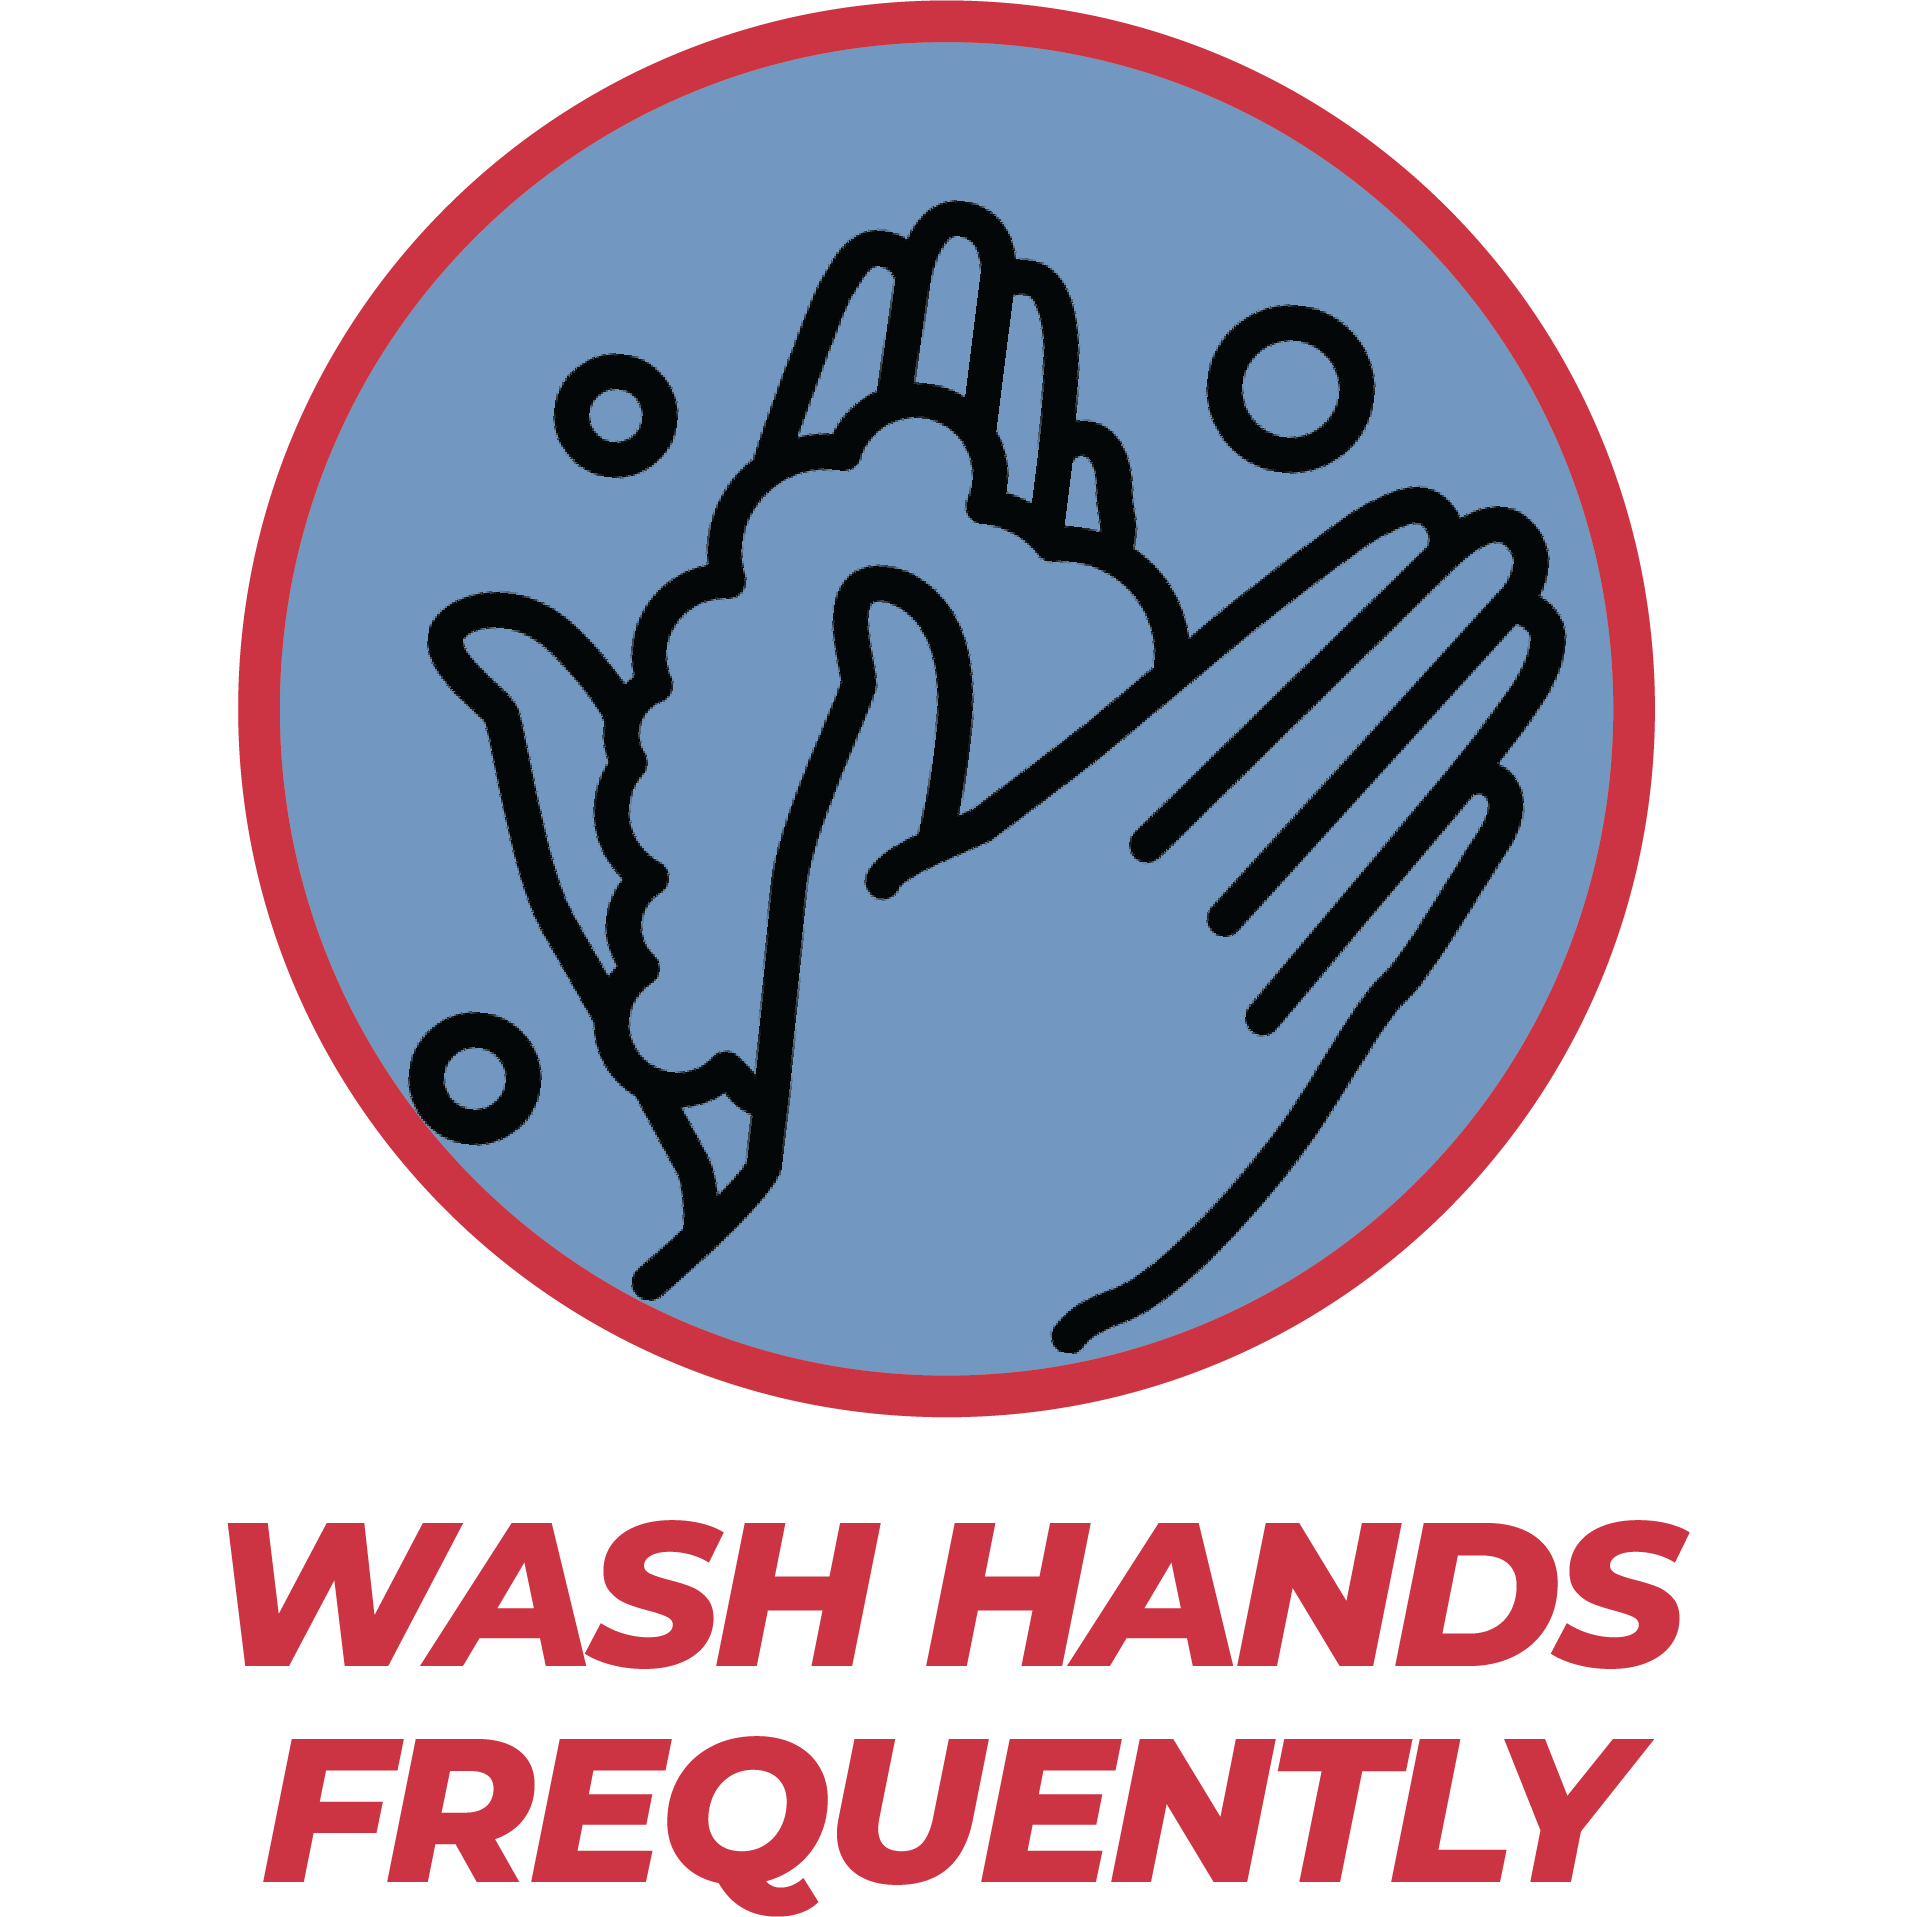 Wash Hands Frequently